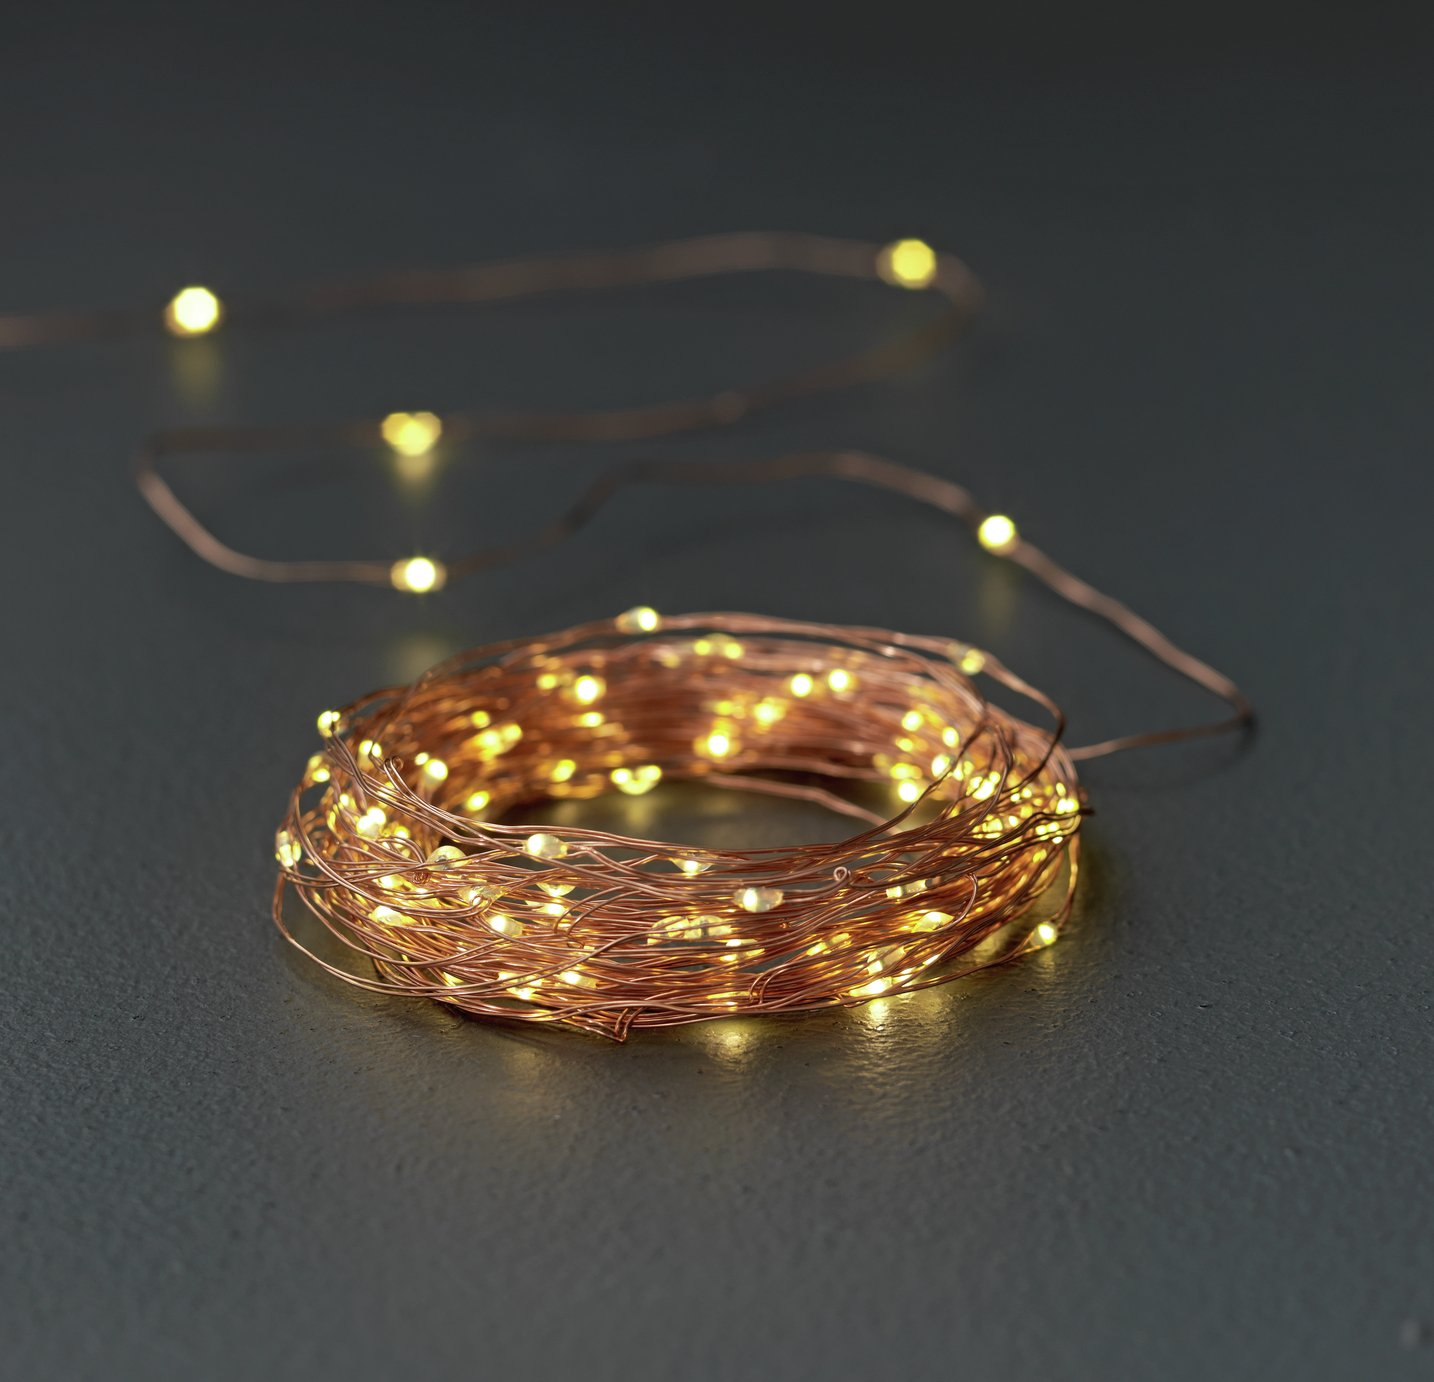 Argos Home Set of 100 LED Copper String Lights - Warm White